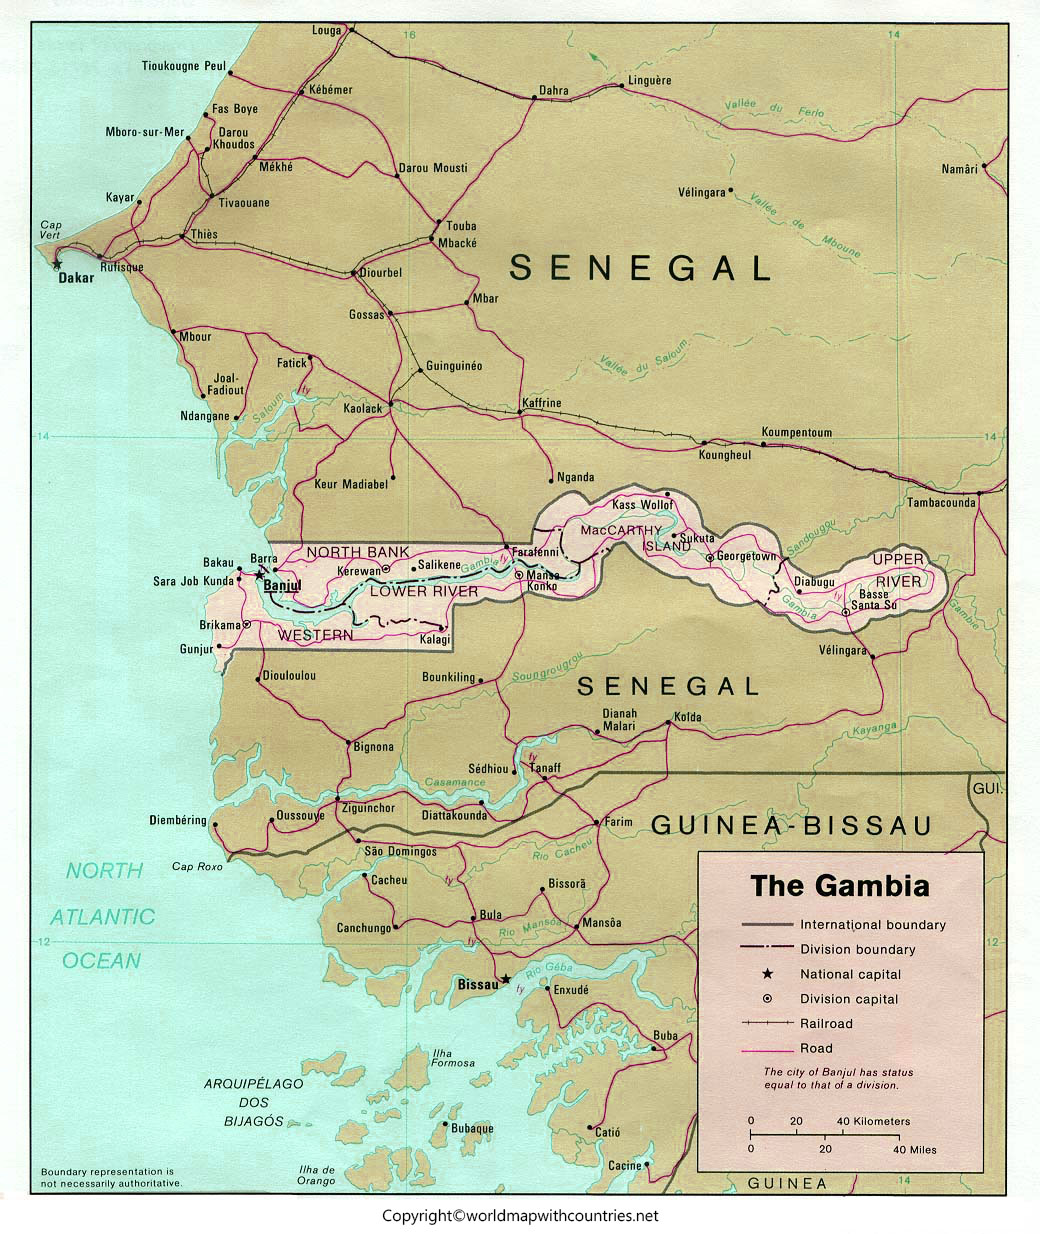 Labeled Map of Gambia